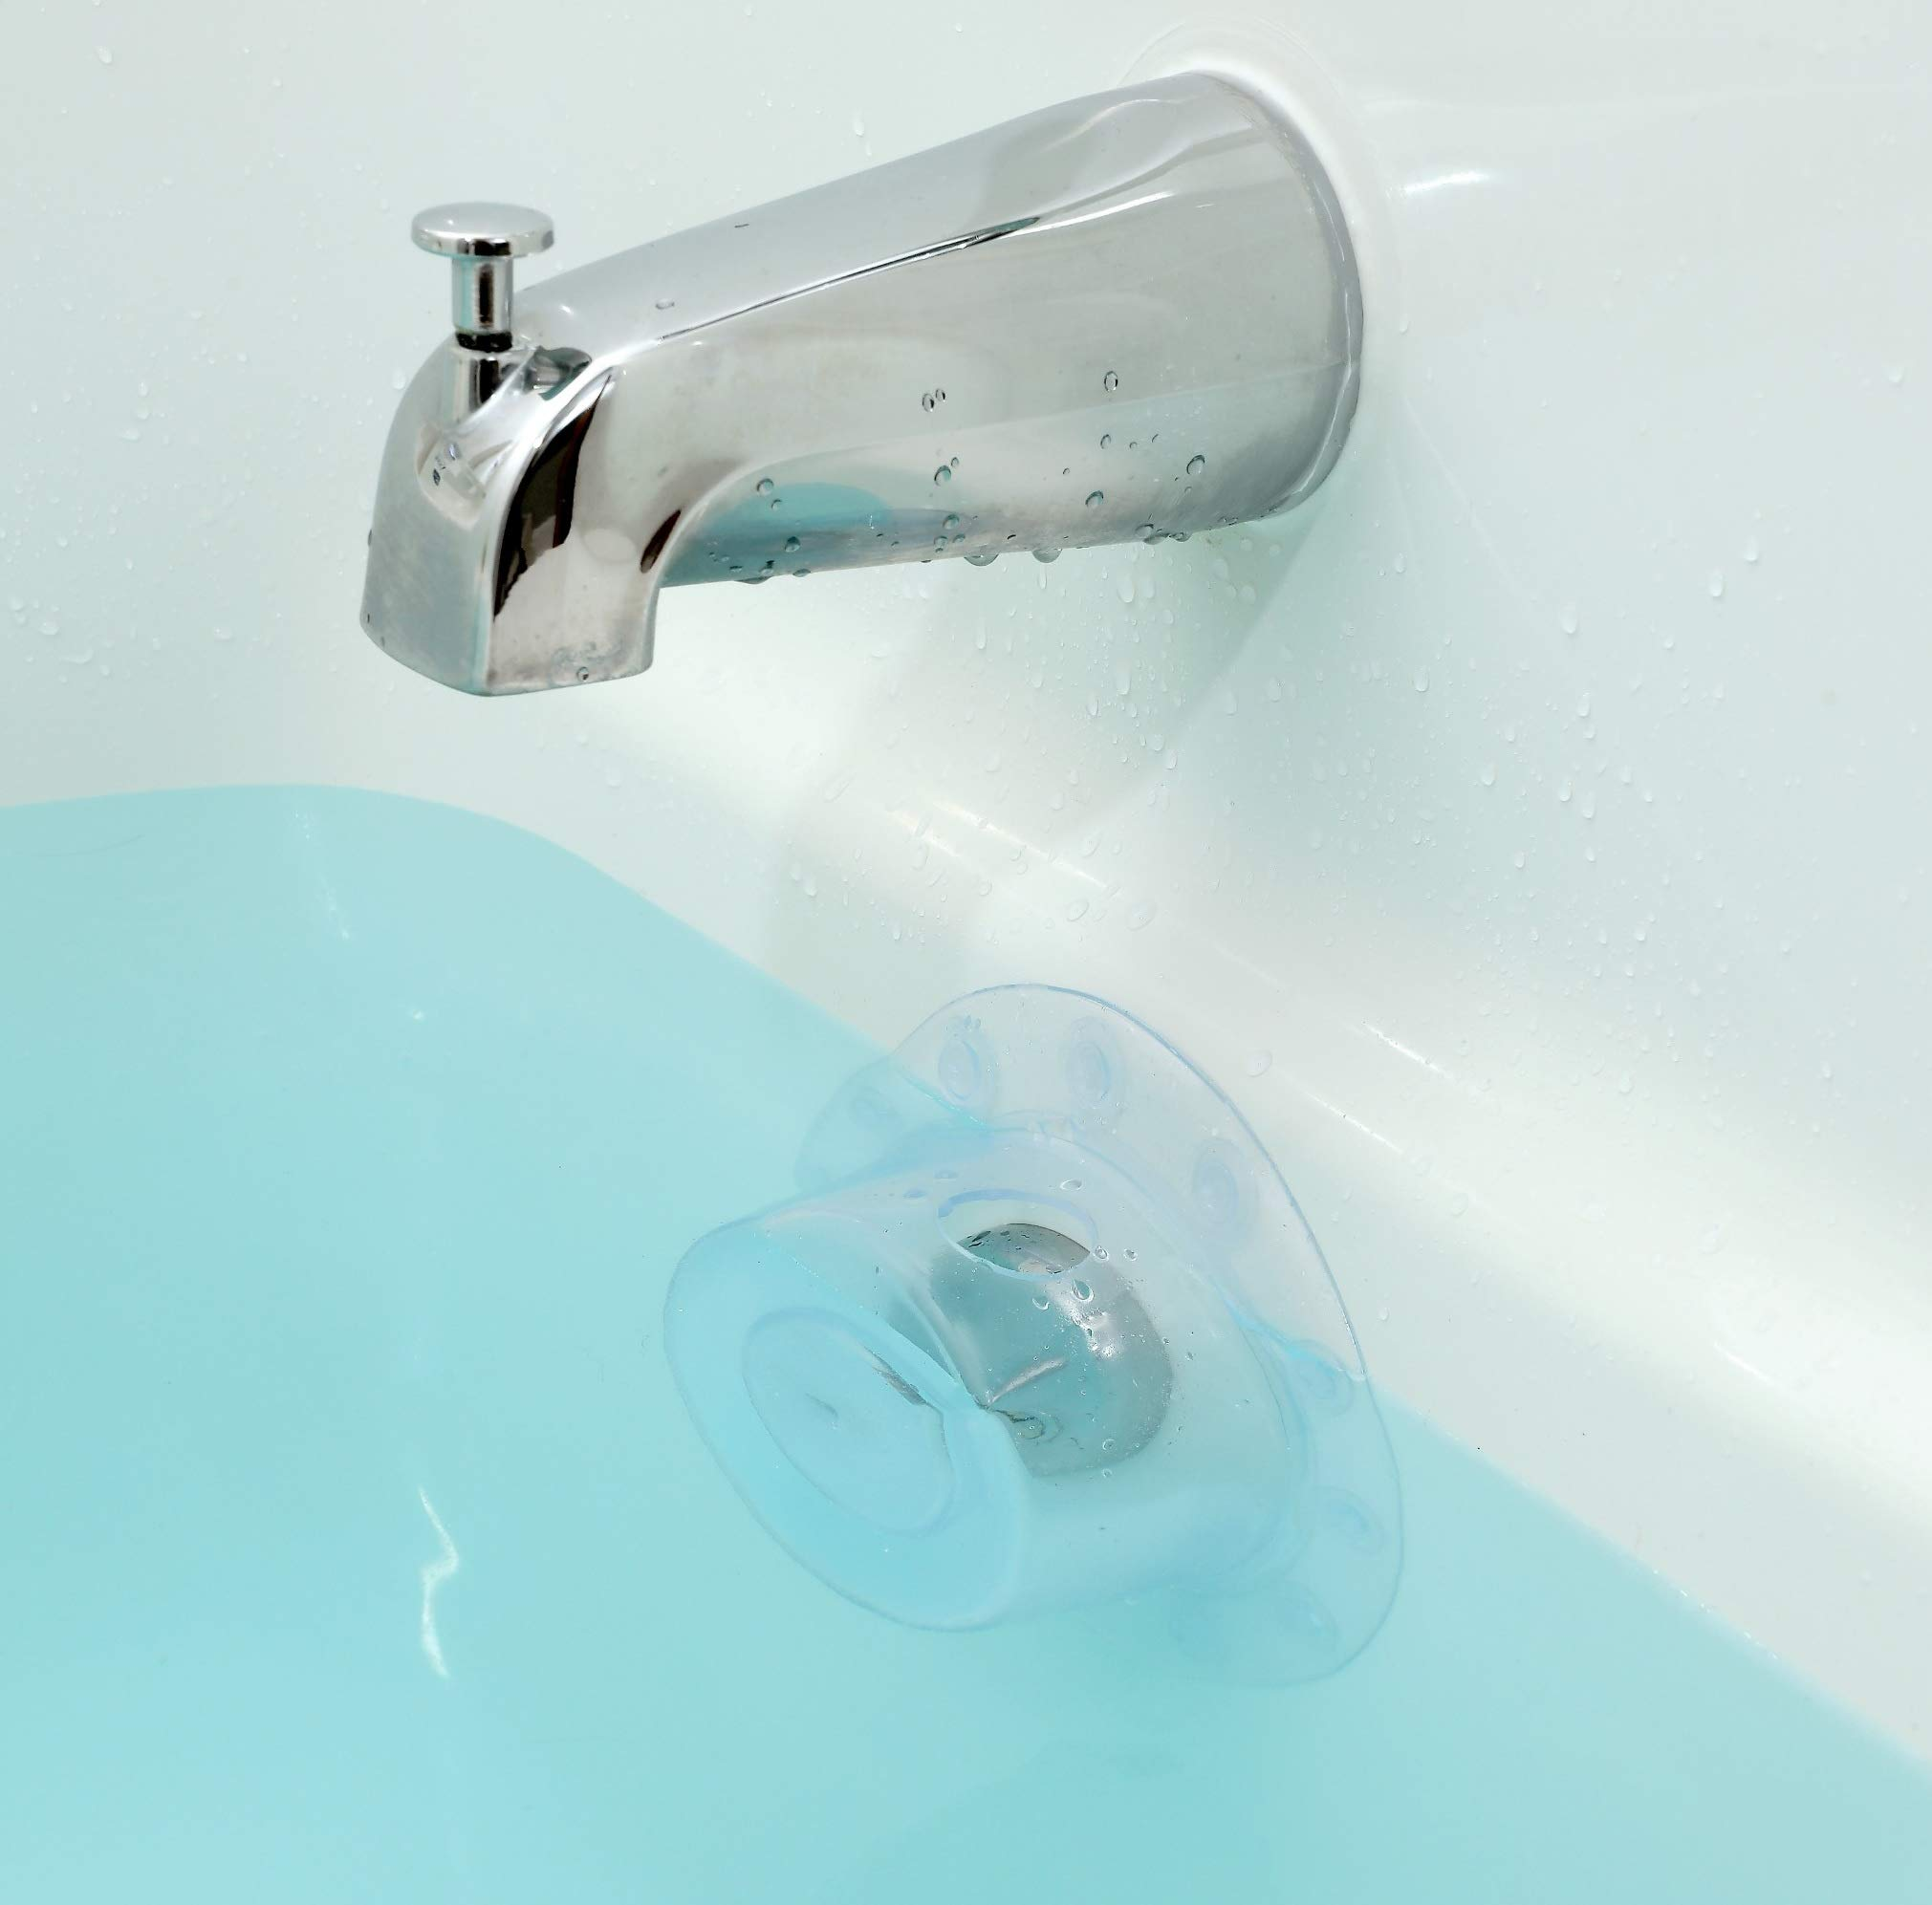 Amazon.com : OXO Tot Silicone Tub Drain Stopper- Aqua : Bathtub ...